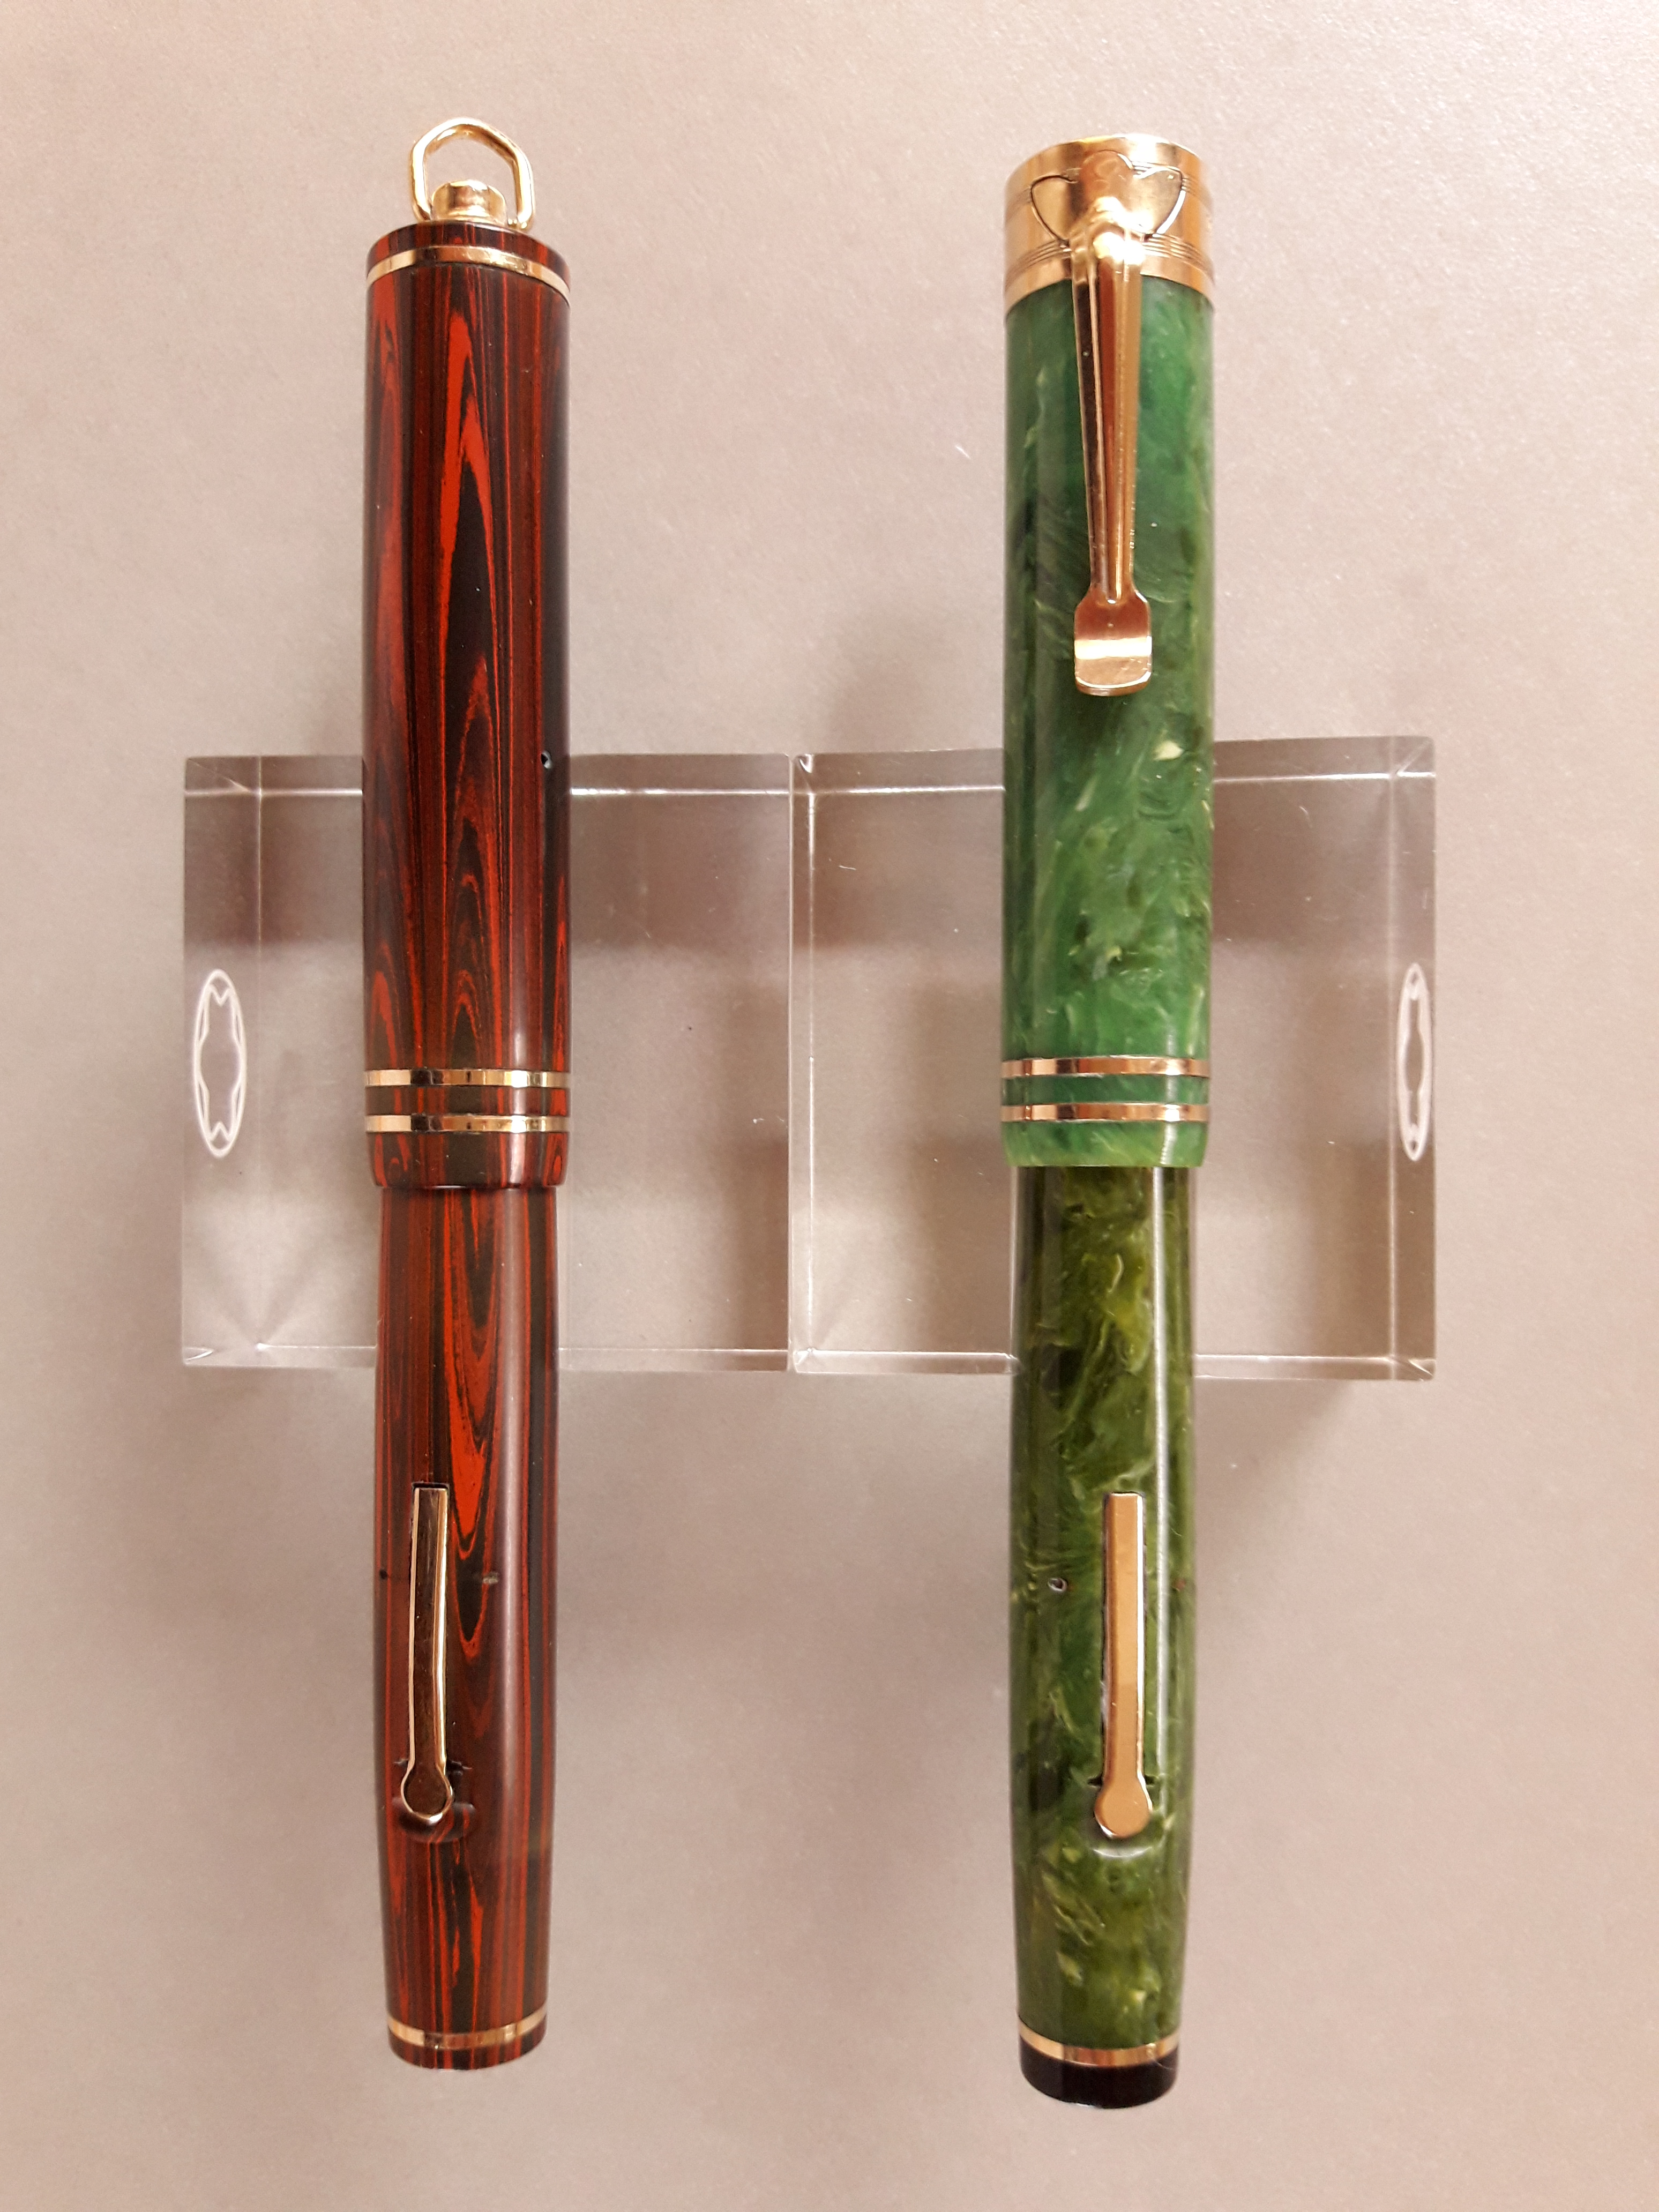 10. Lady Rosewood & Tulip Clip Green capped.jpg